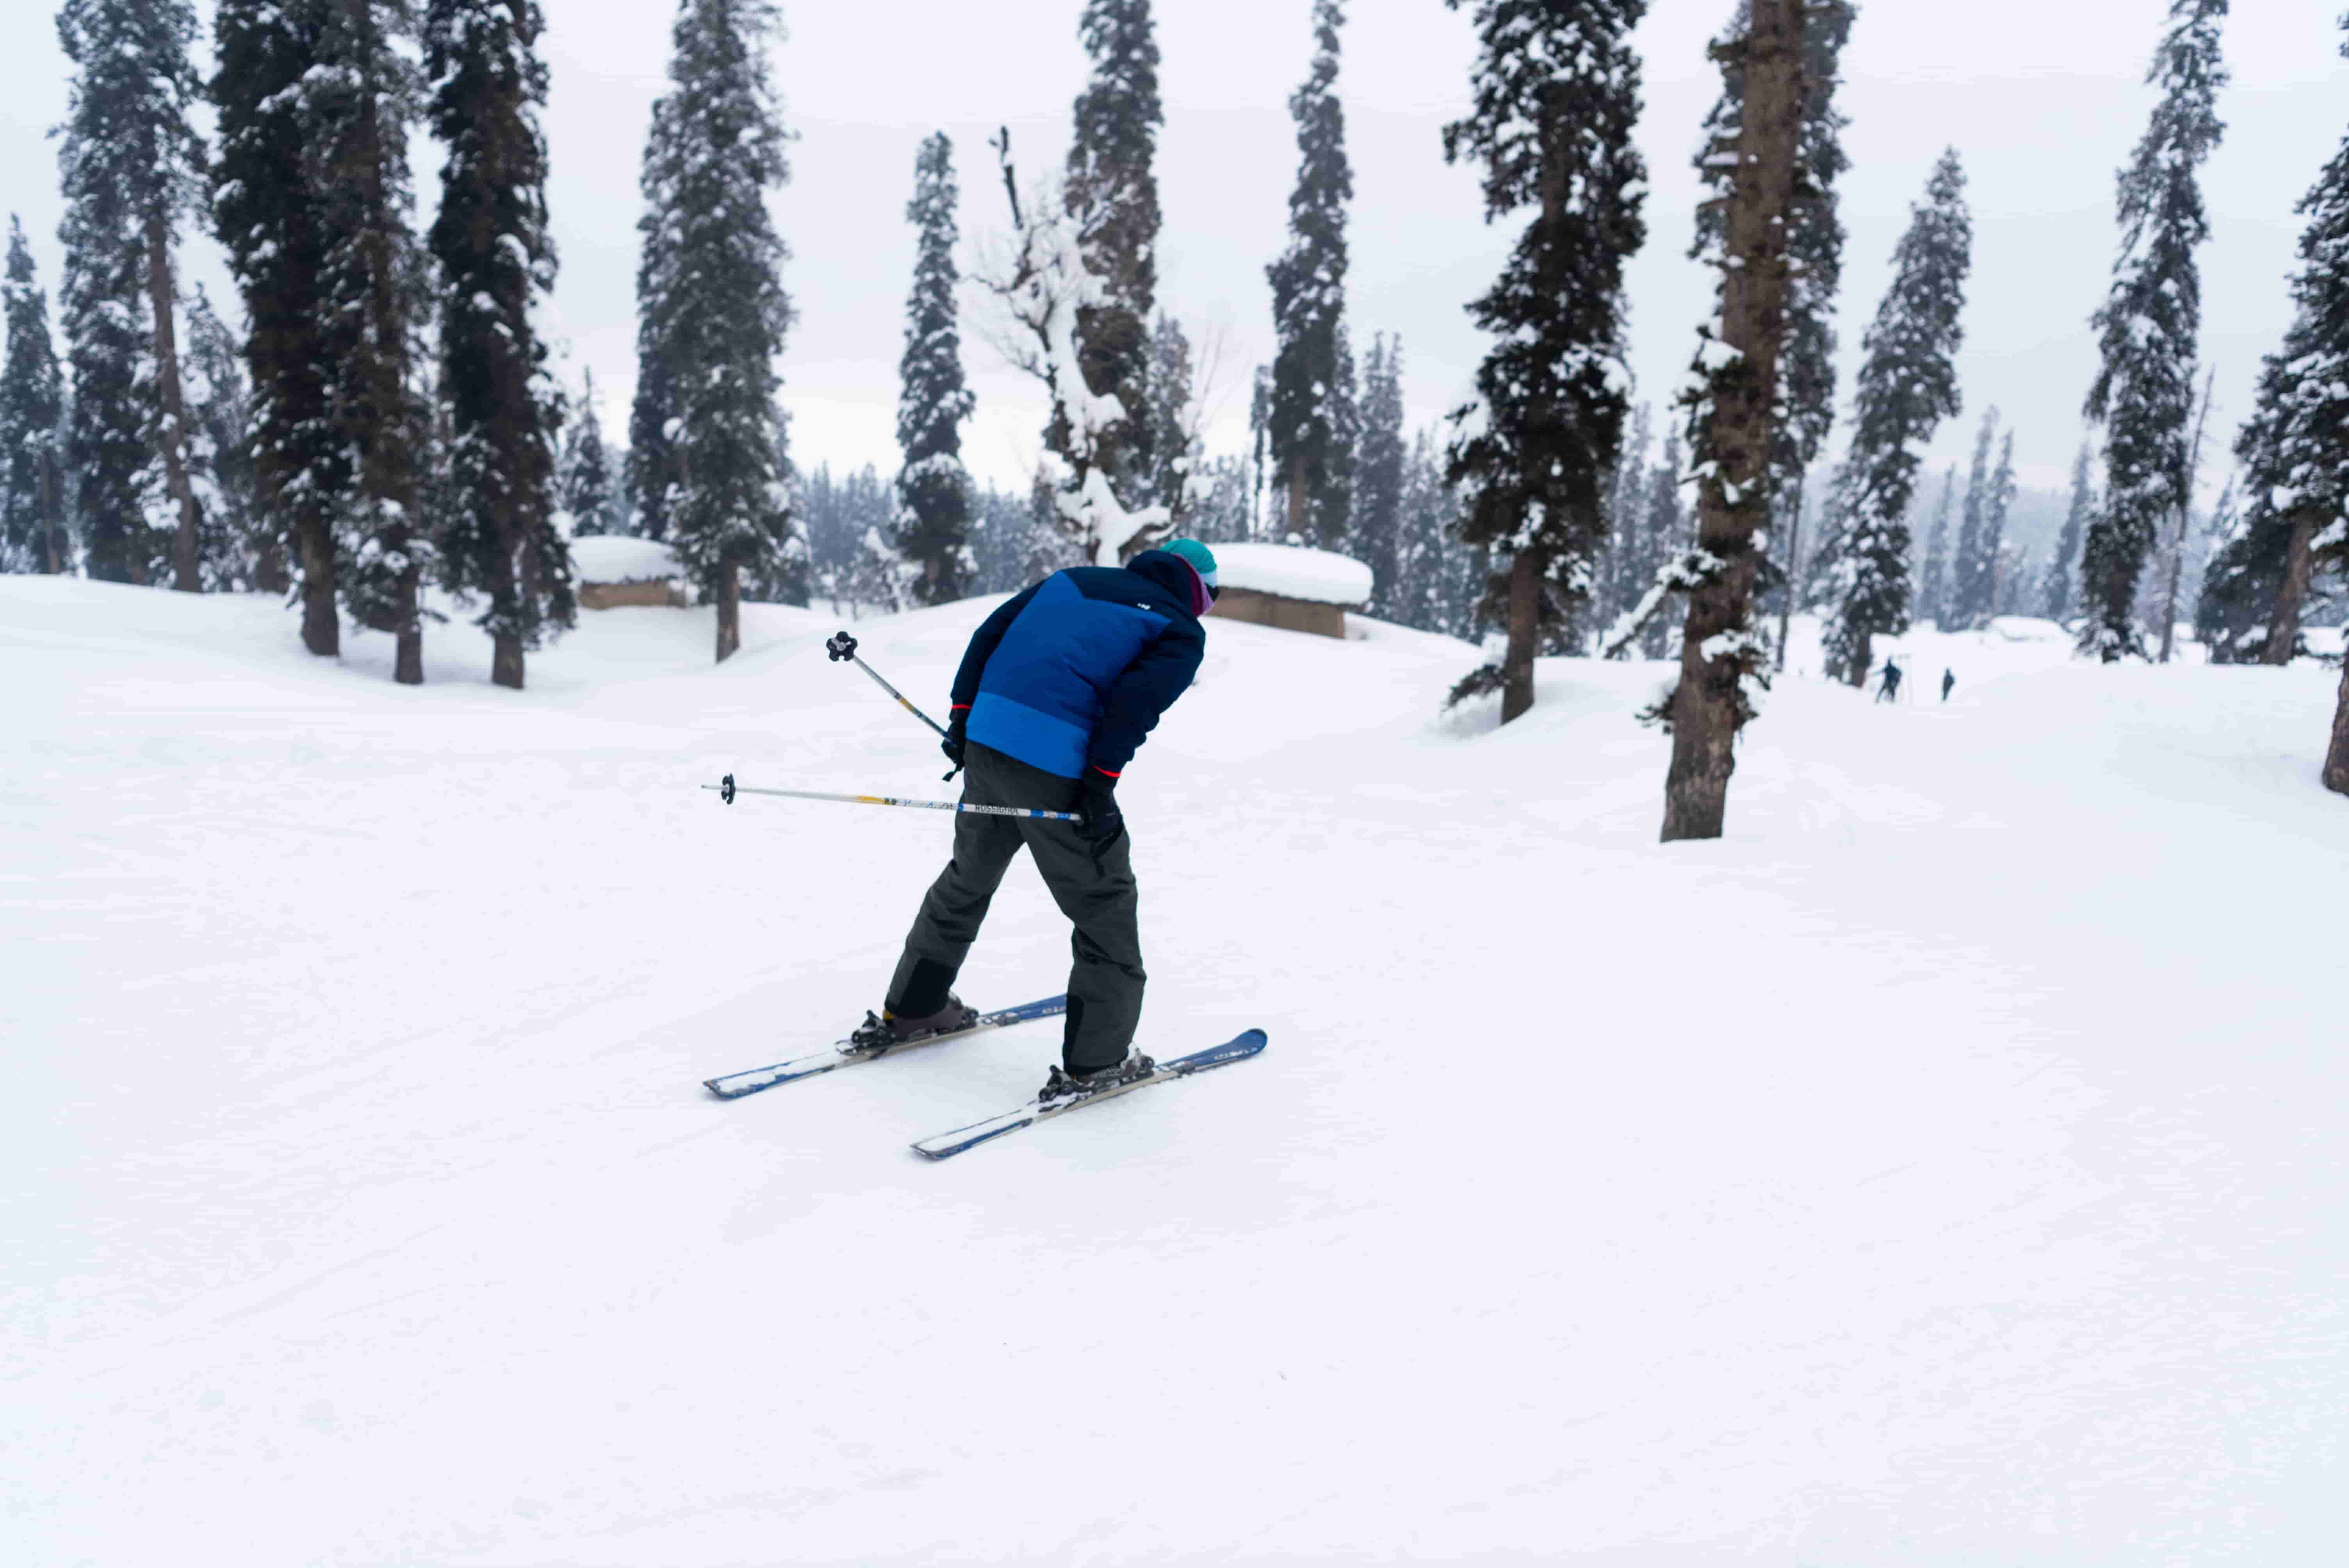 7 Best Winter sports In India - An Ultimate Guide